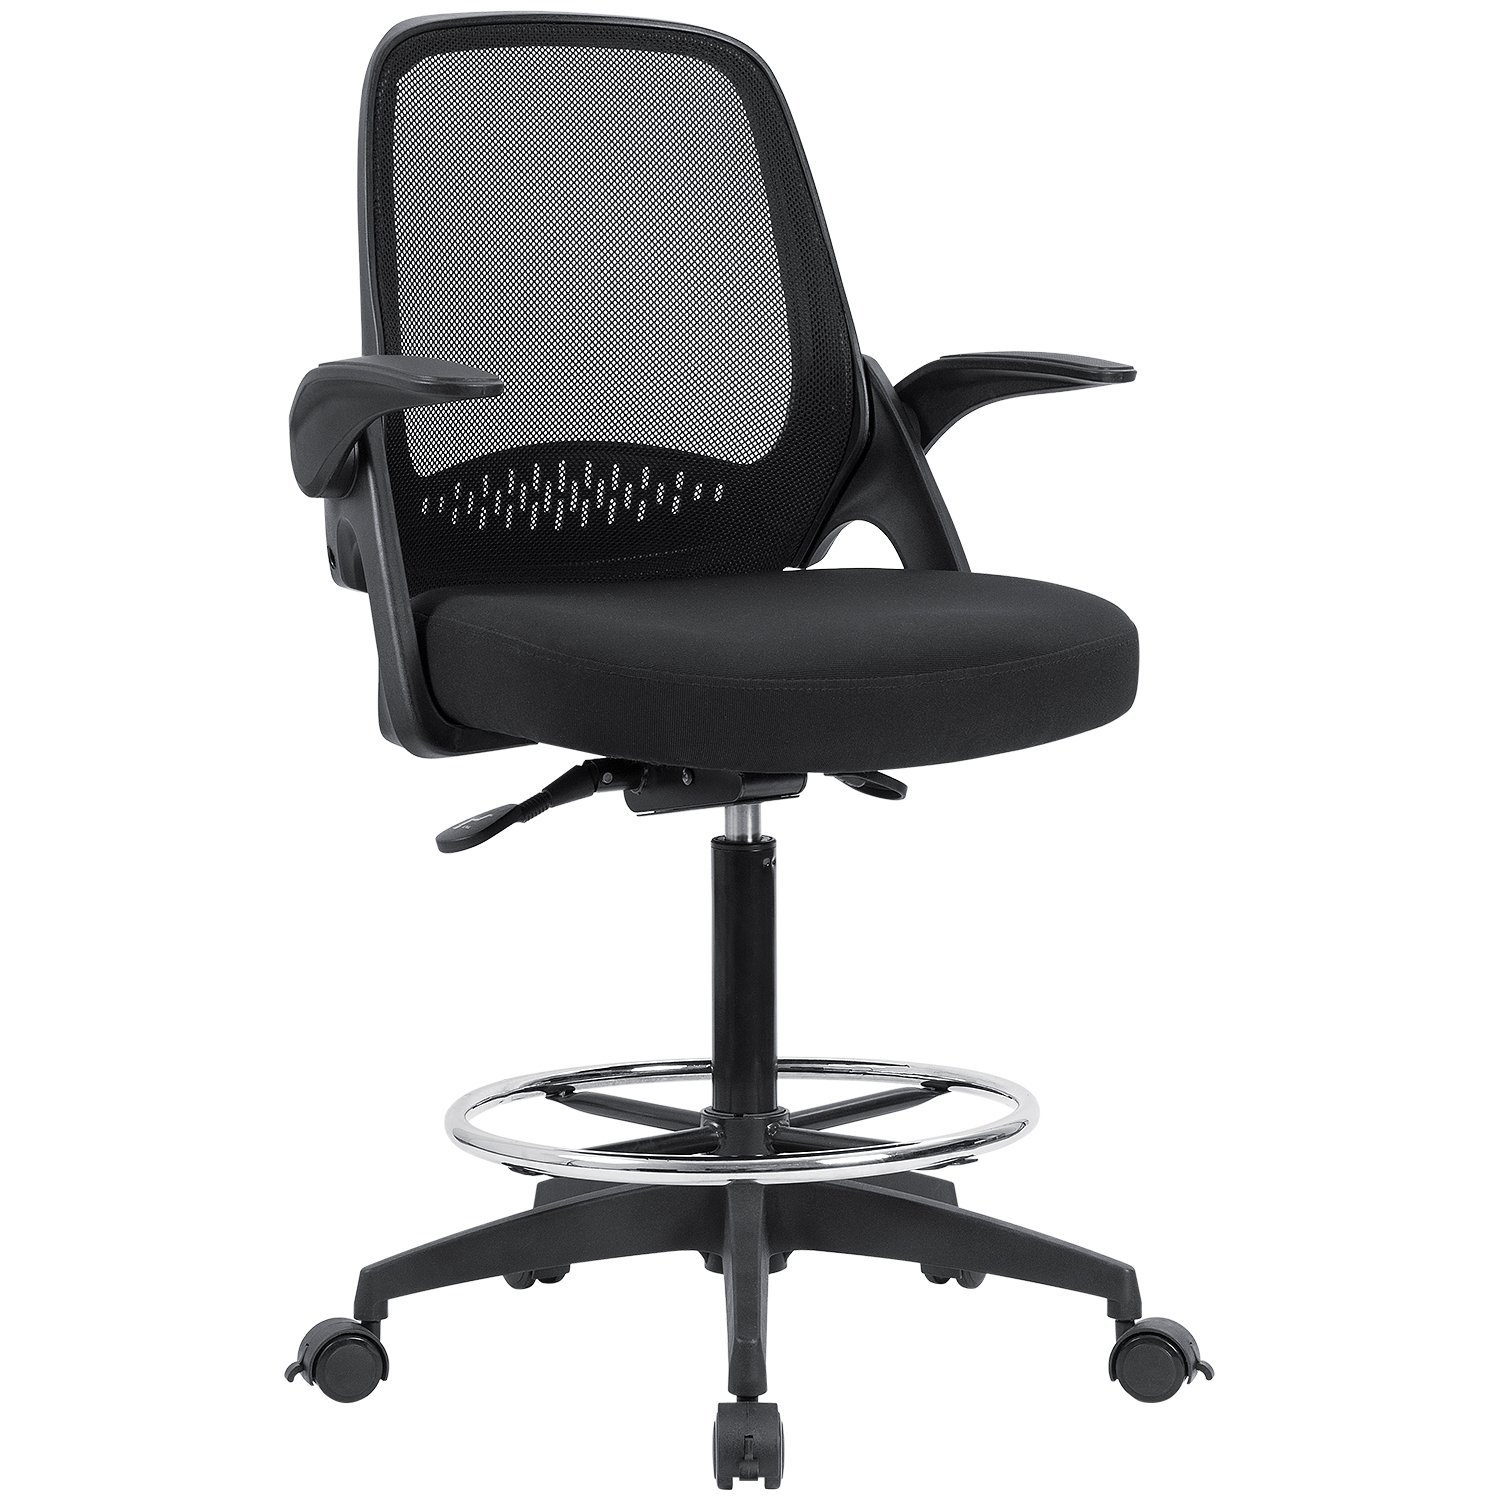 Devoko Drafting Chair with Flip-up Armrests Tall Office Chair Executive Computer Standing Desk Chair with Lockable Wheels and Adjustable Footrest Ring (Black) by Devoko